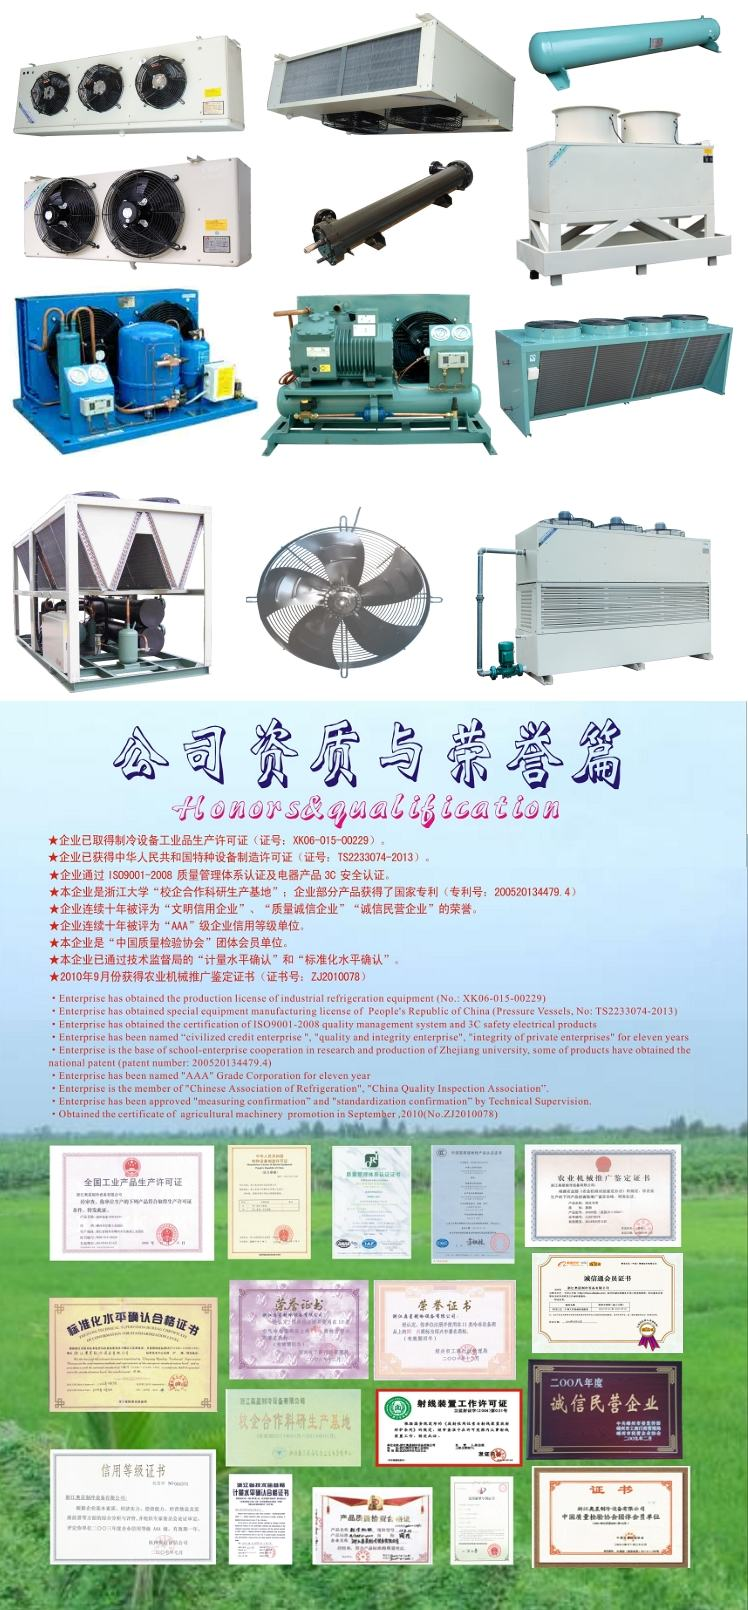 Box Typle Compressor Condensing Unit